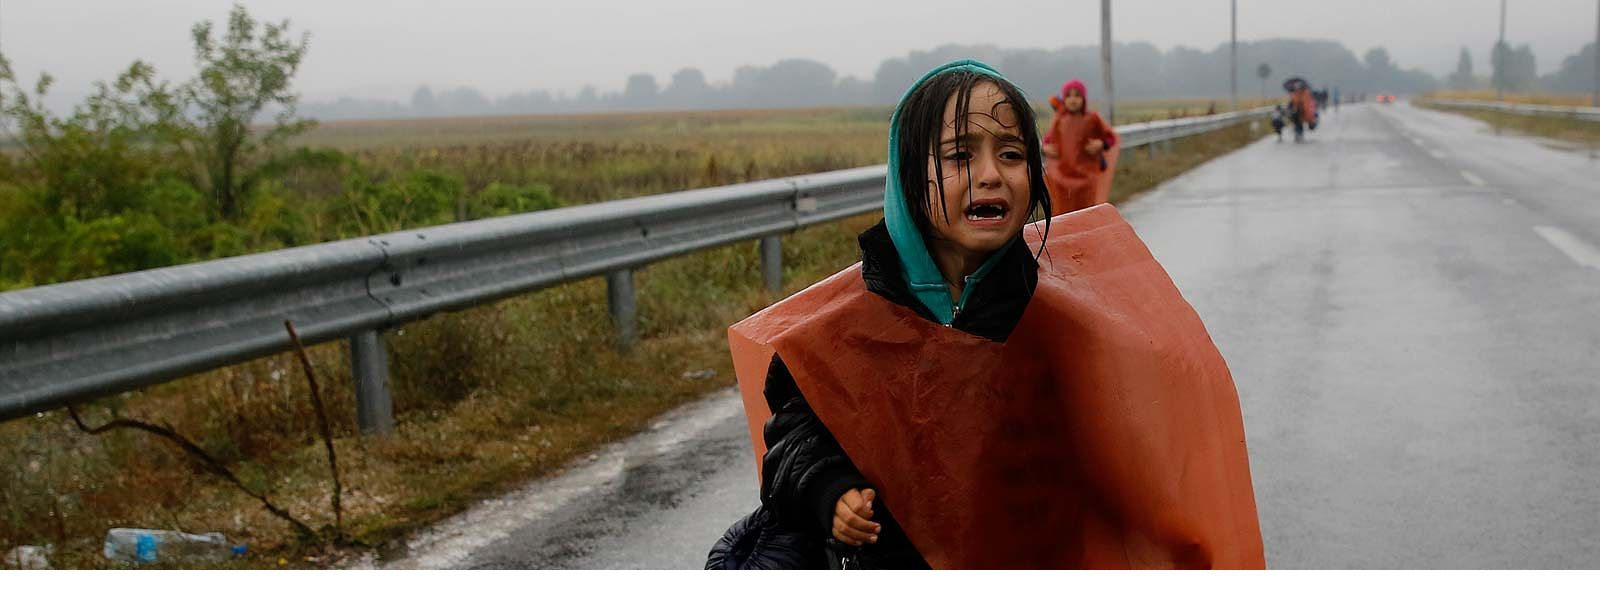 Crying girl on roadside